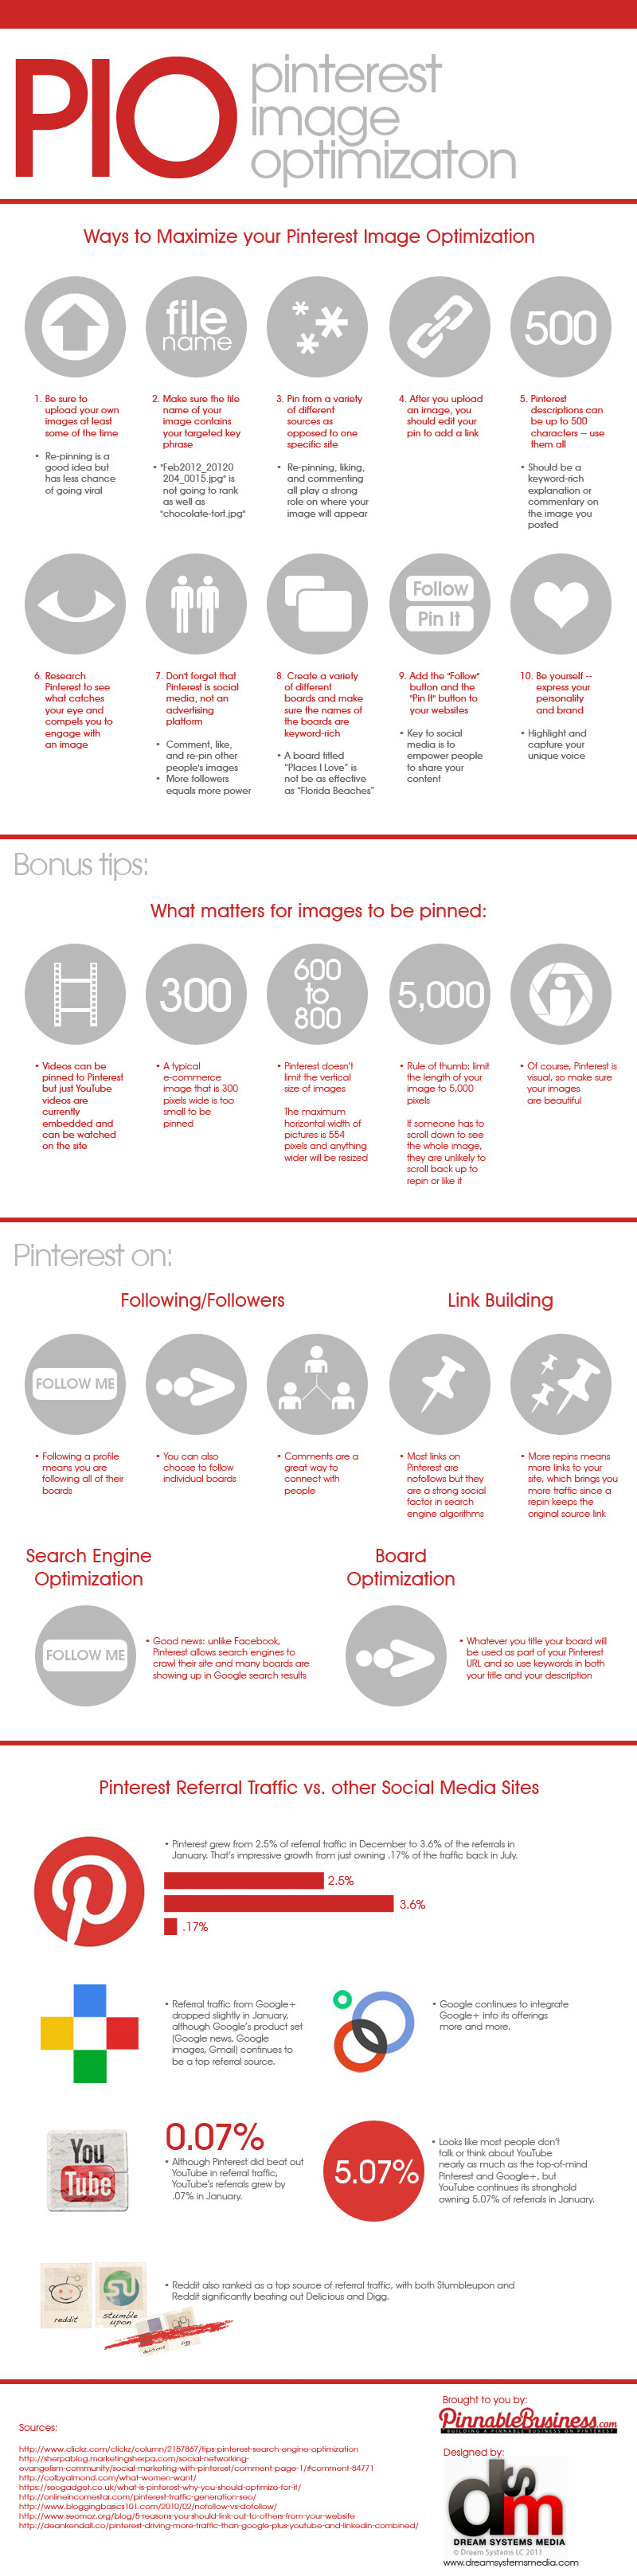 Pinterest-Image-Optimization-infographic